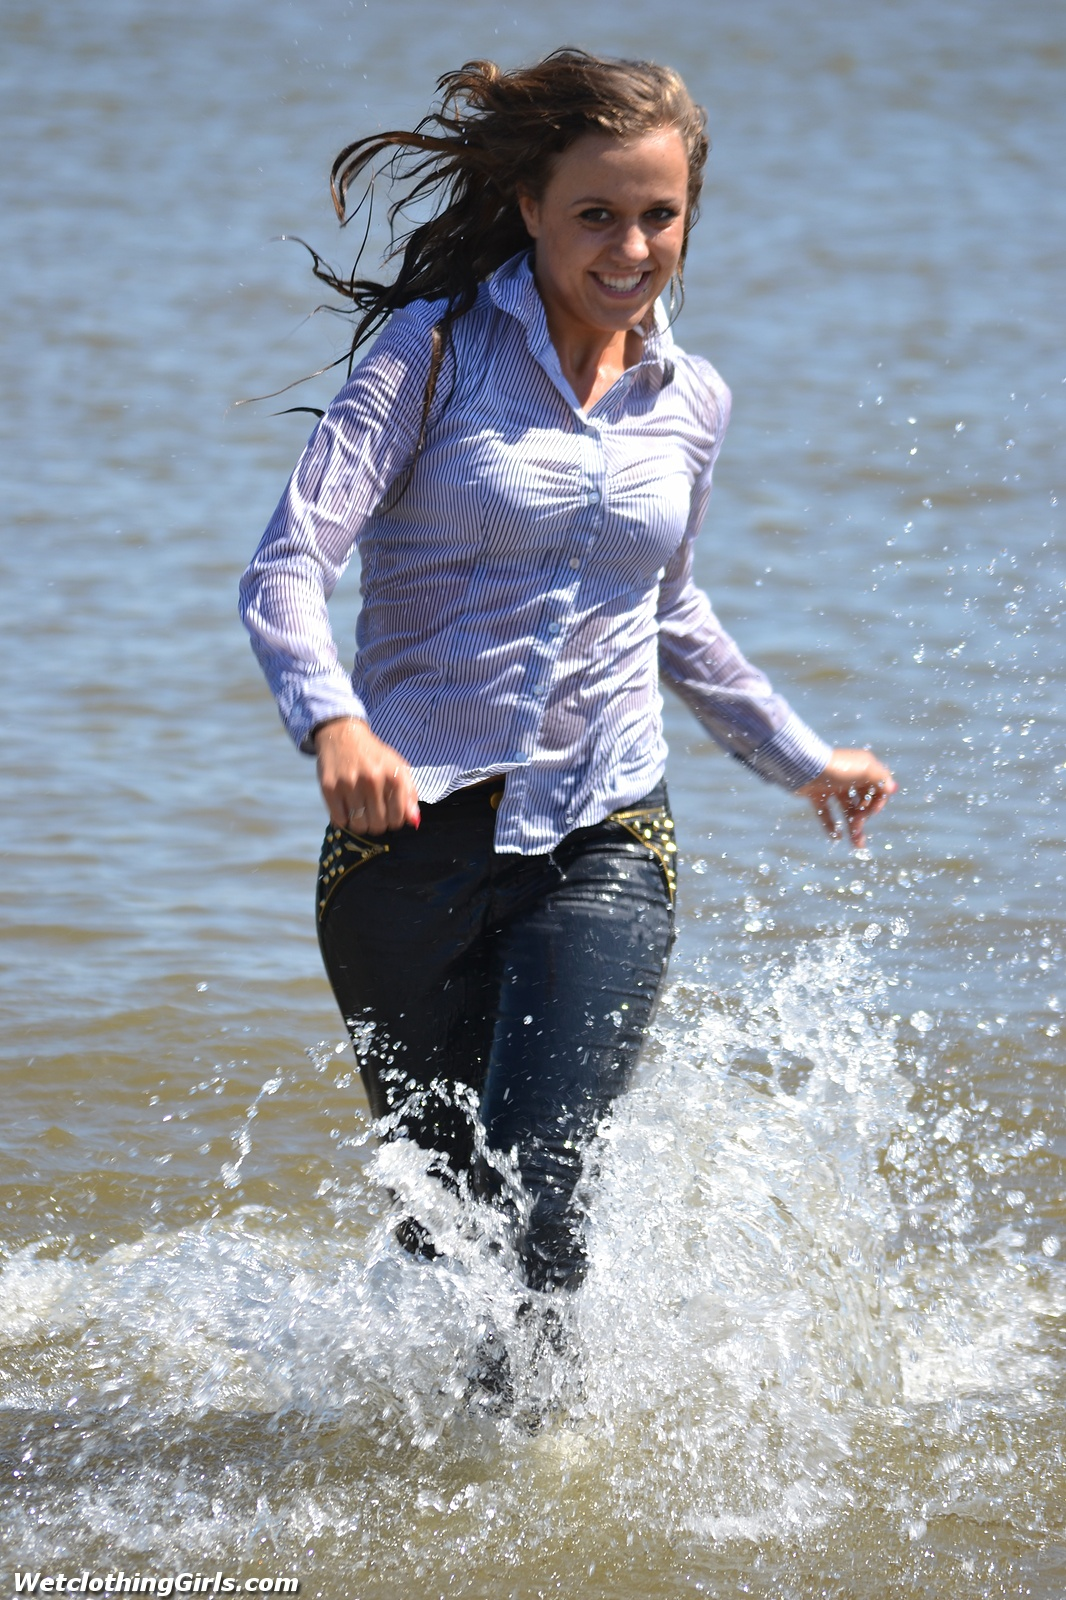 She Is A Natural In The Water And Wetlook Becomes Her Very